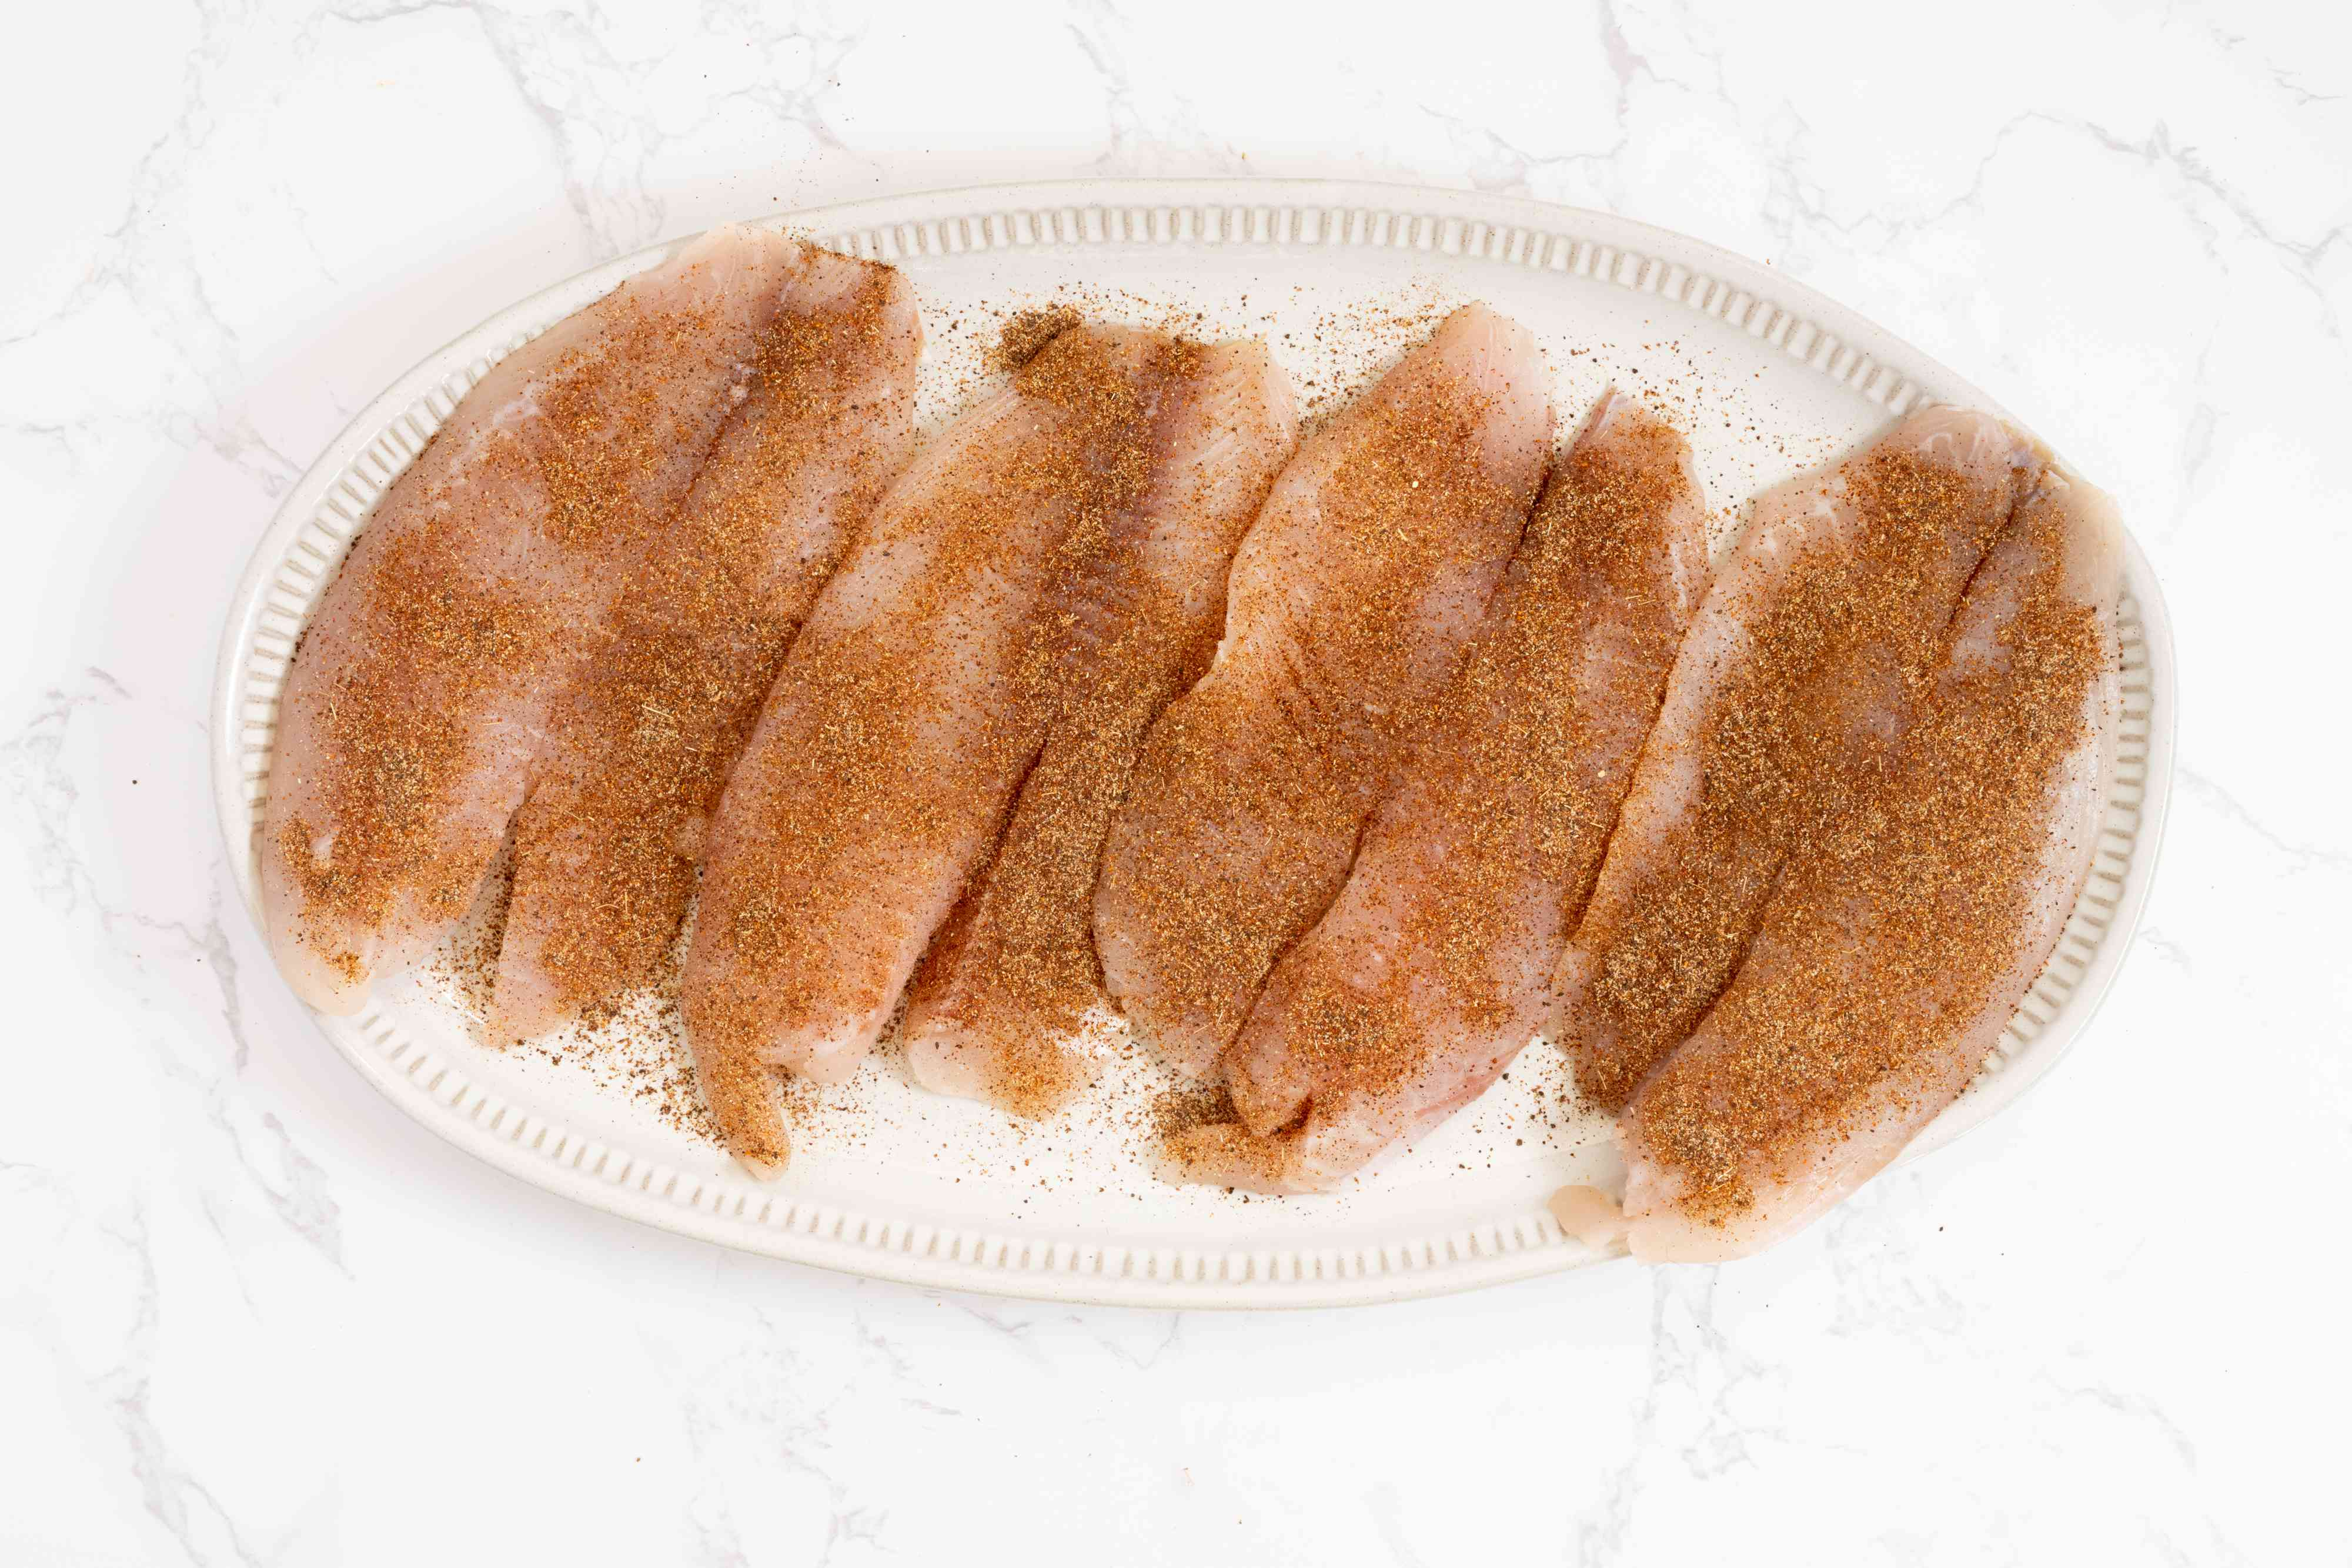 Sprinkle the spice mixture over both sides of the tilapia fillets